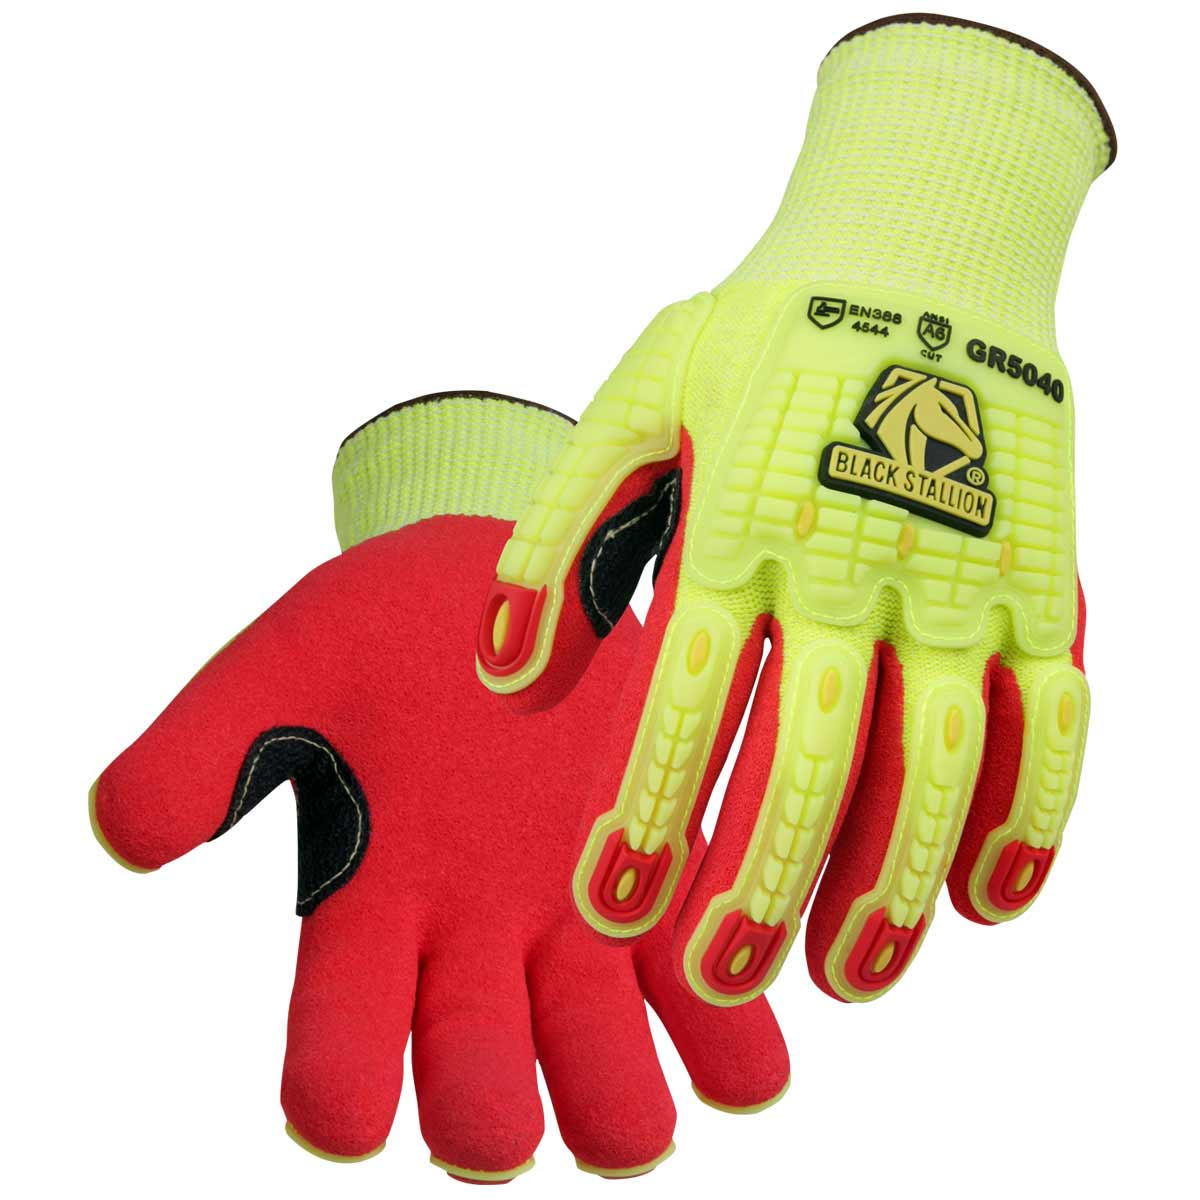 A6 CUT RESISTANT AND IMPACT SANDY NITRILE COATED HI-VIS HPPE BLEND GLOVE. Pack 6. X Large. GR5040-HR-XLG